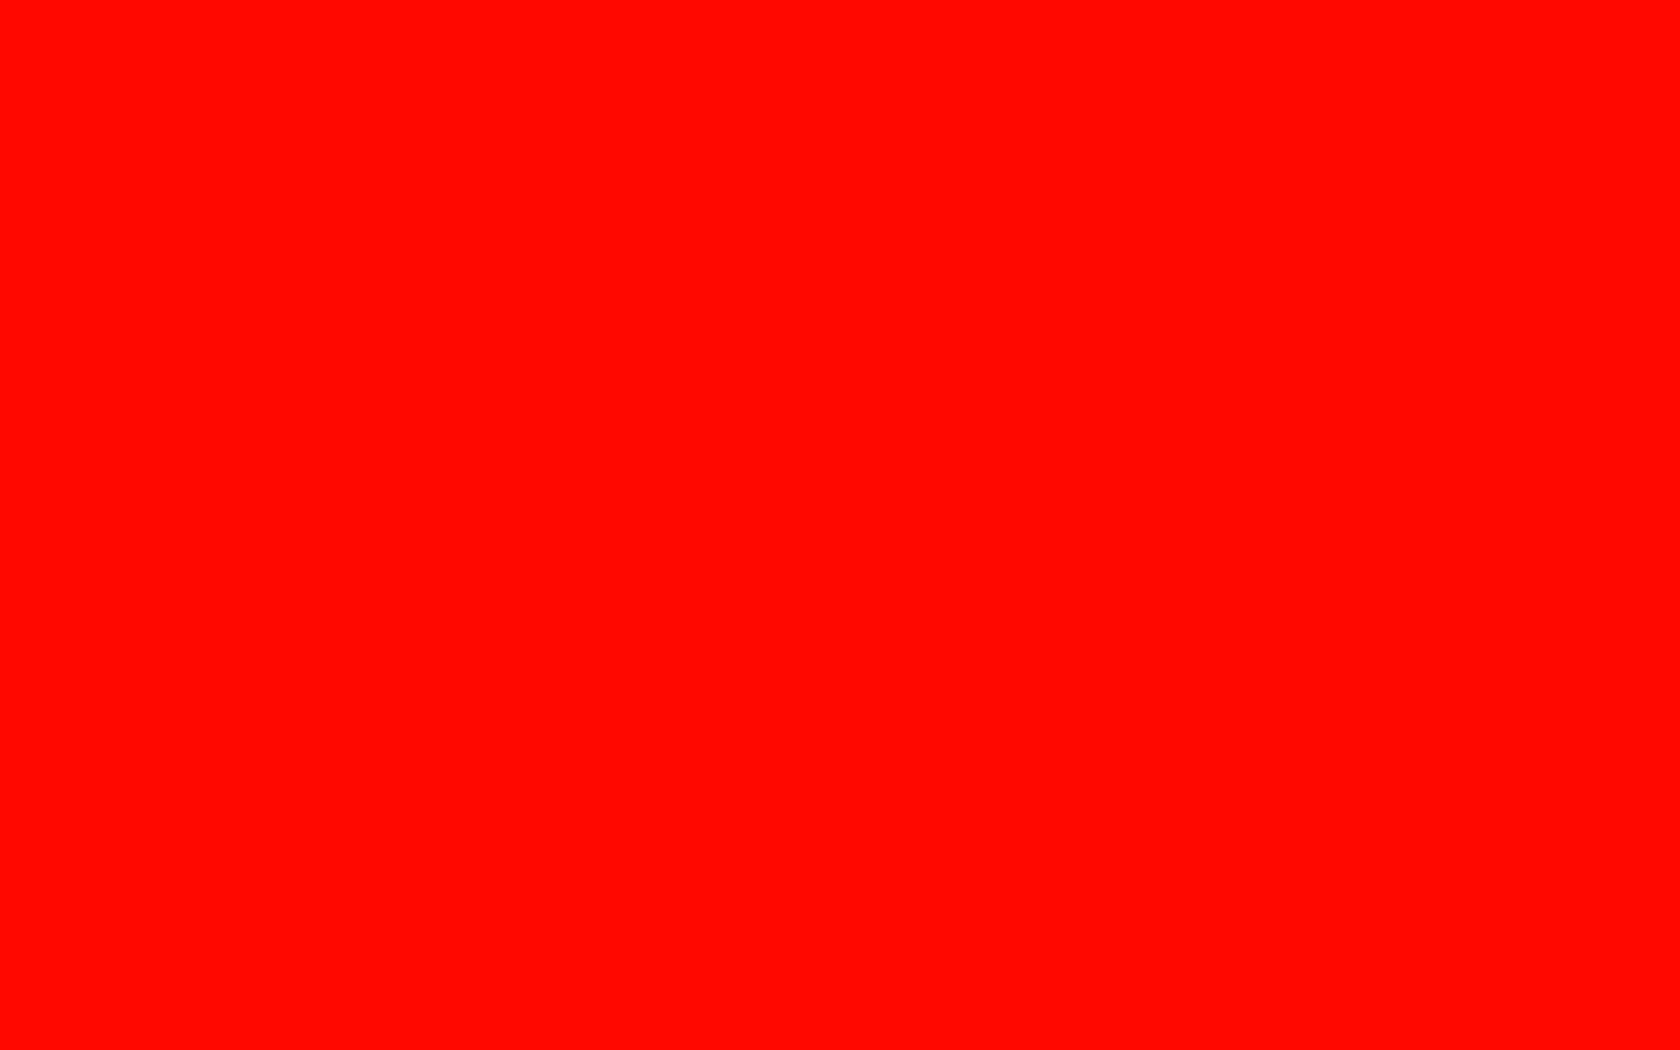 1680x1050 Candy Apple Red Solid Color Background